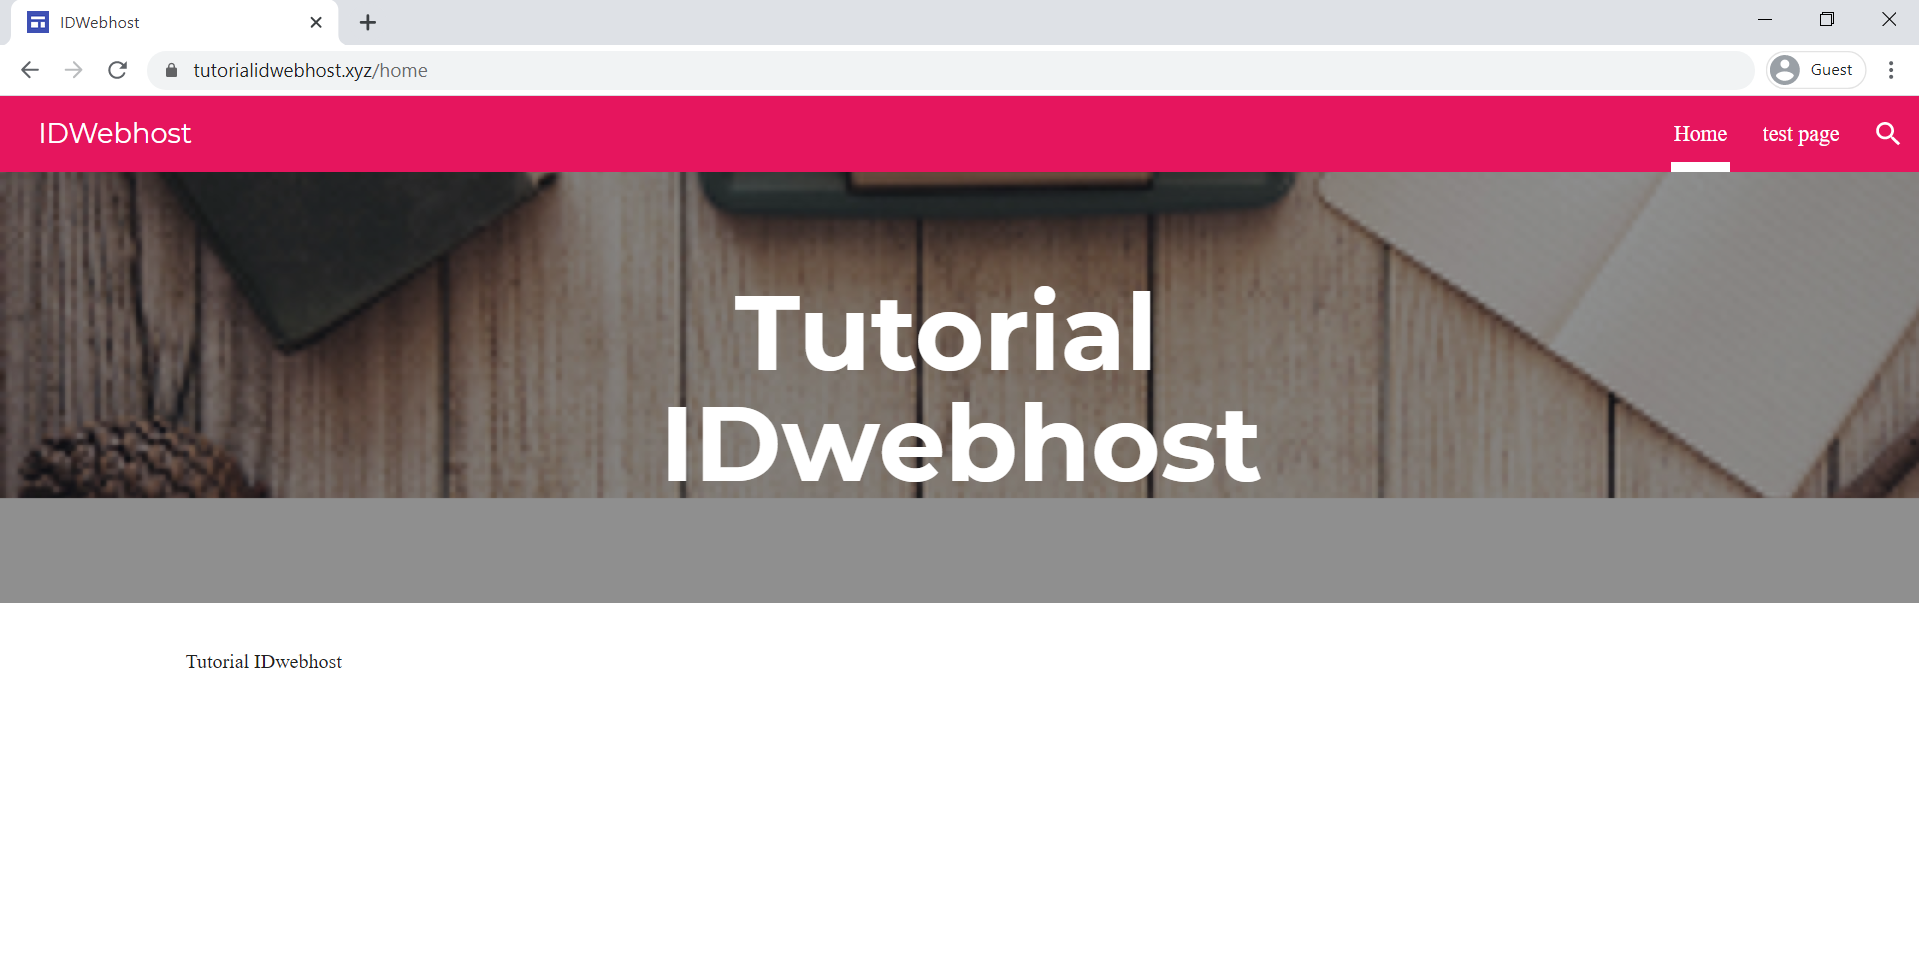 Custom Domain Google Sites IDwebhost